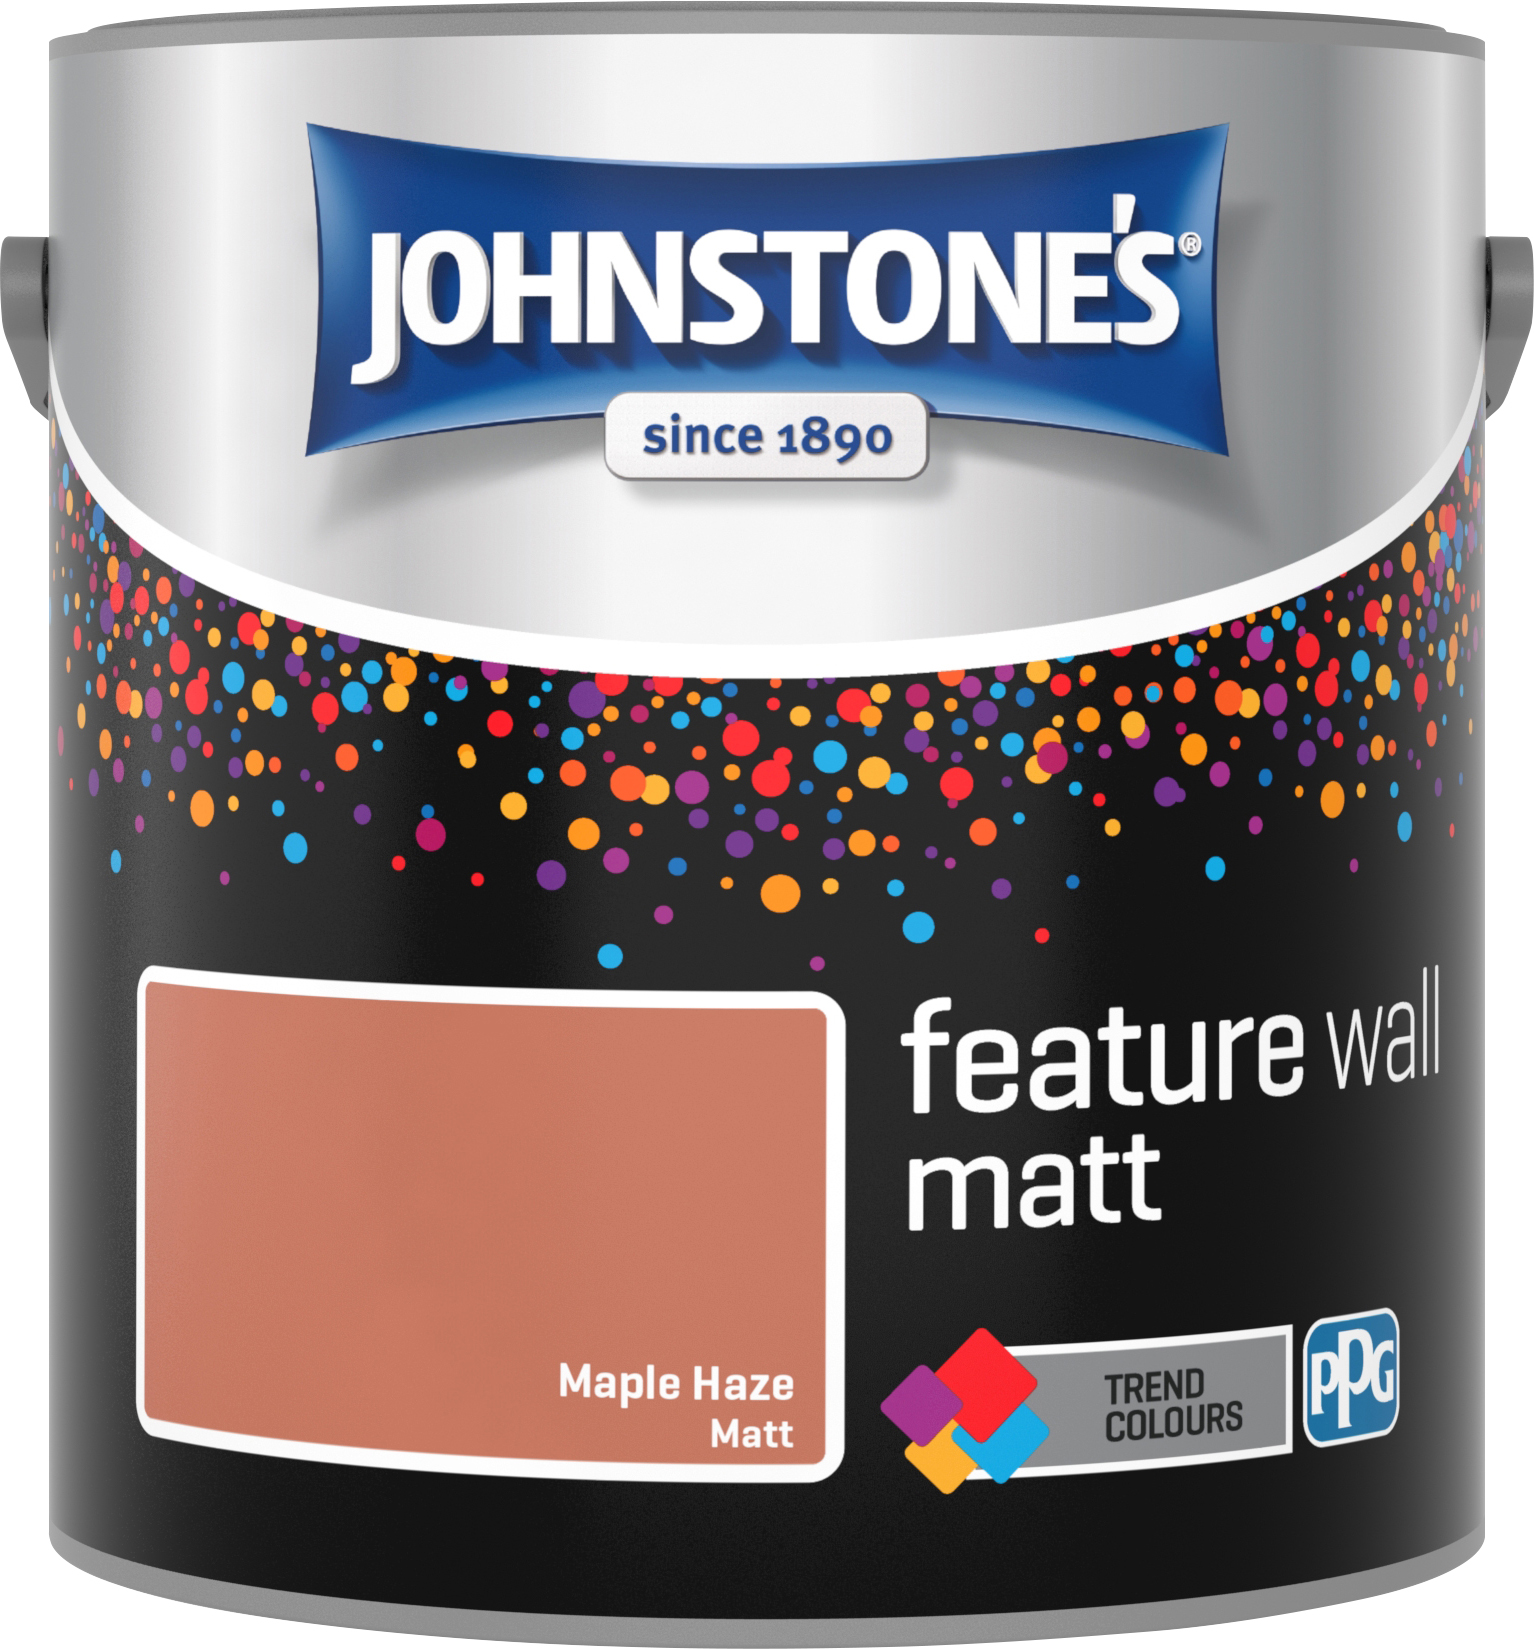 Johnstone's 2.5 Litre Feature Wall Matt Emulsion Paint - Maple Haze